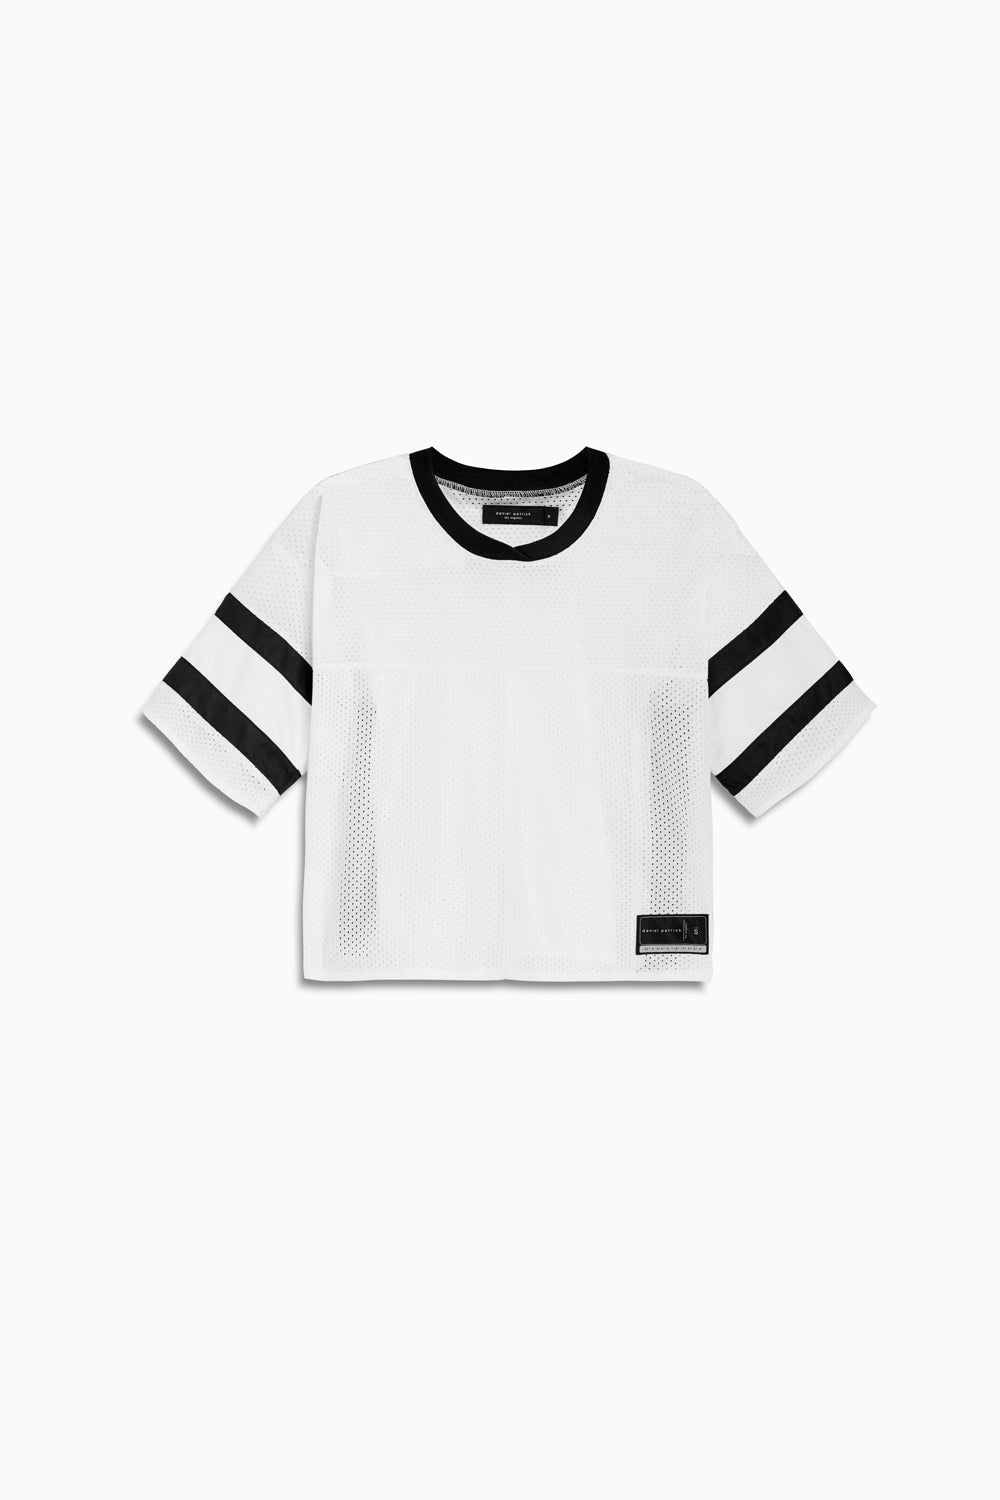 womens crop mesh football jersey in white/black by daniel patrick